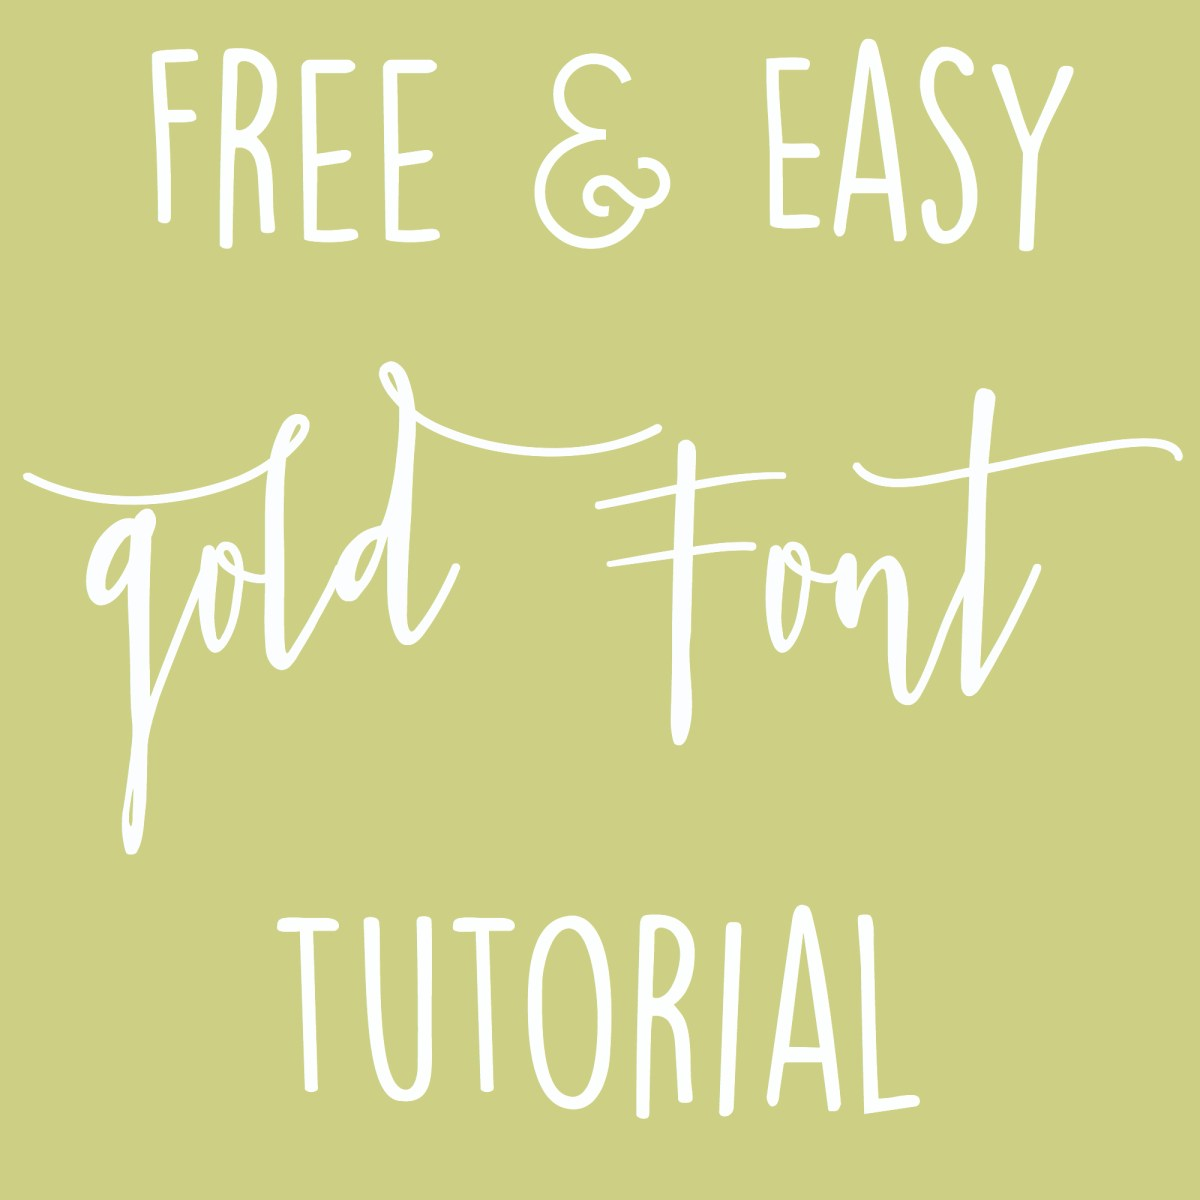 Free & Easy Gold Font Tutorial – Mackenzie Kendall